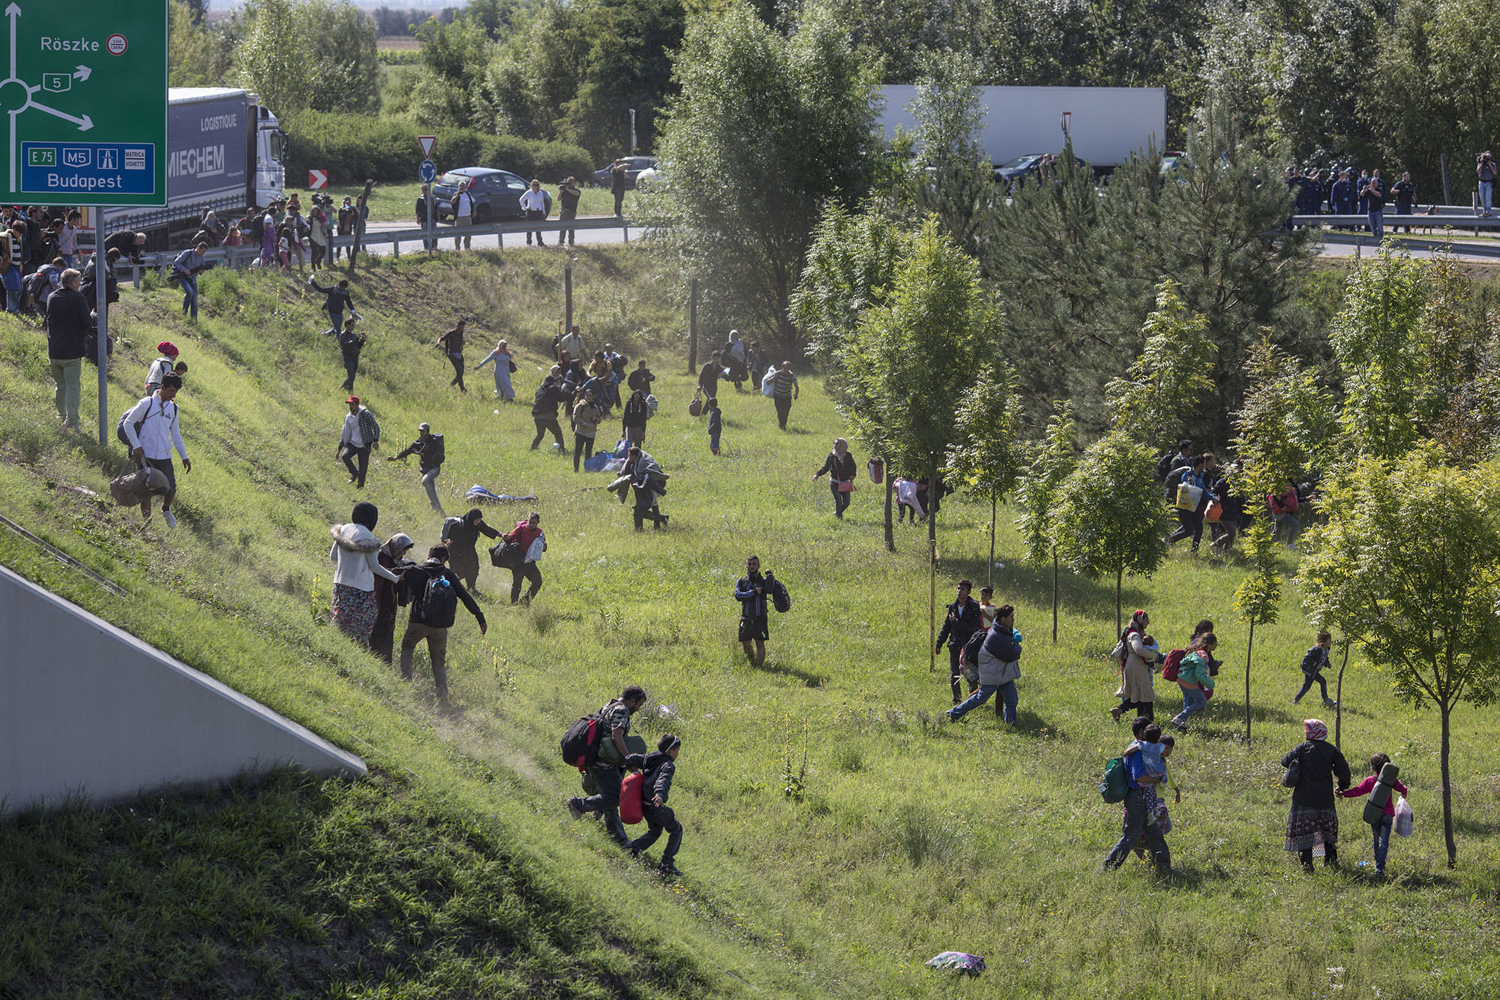 The path of migrants in Europe 14